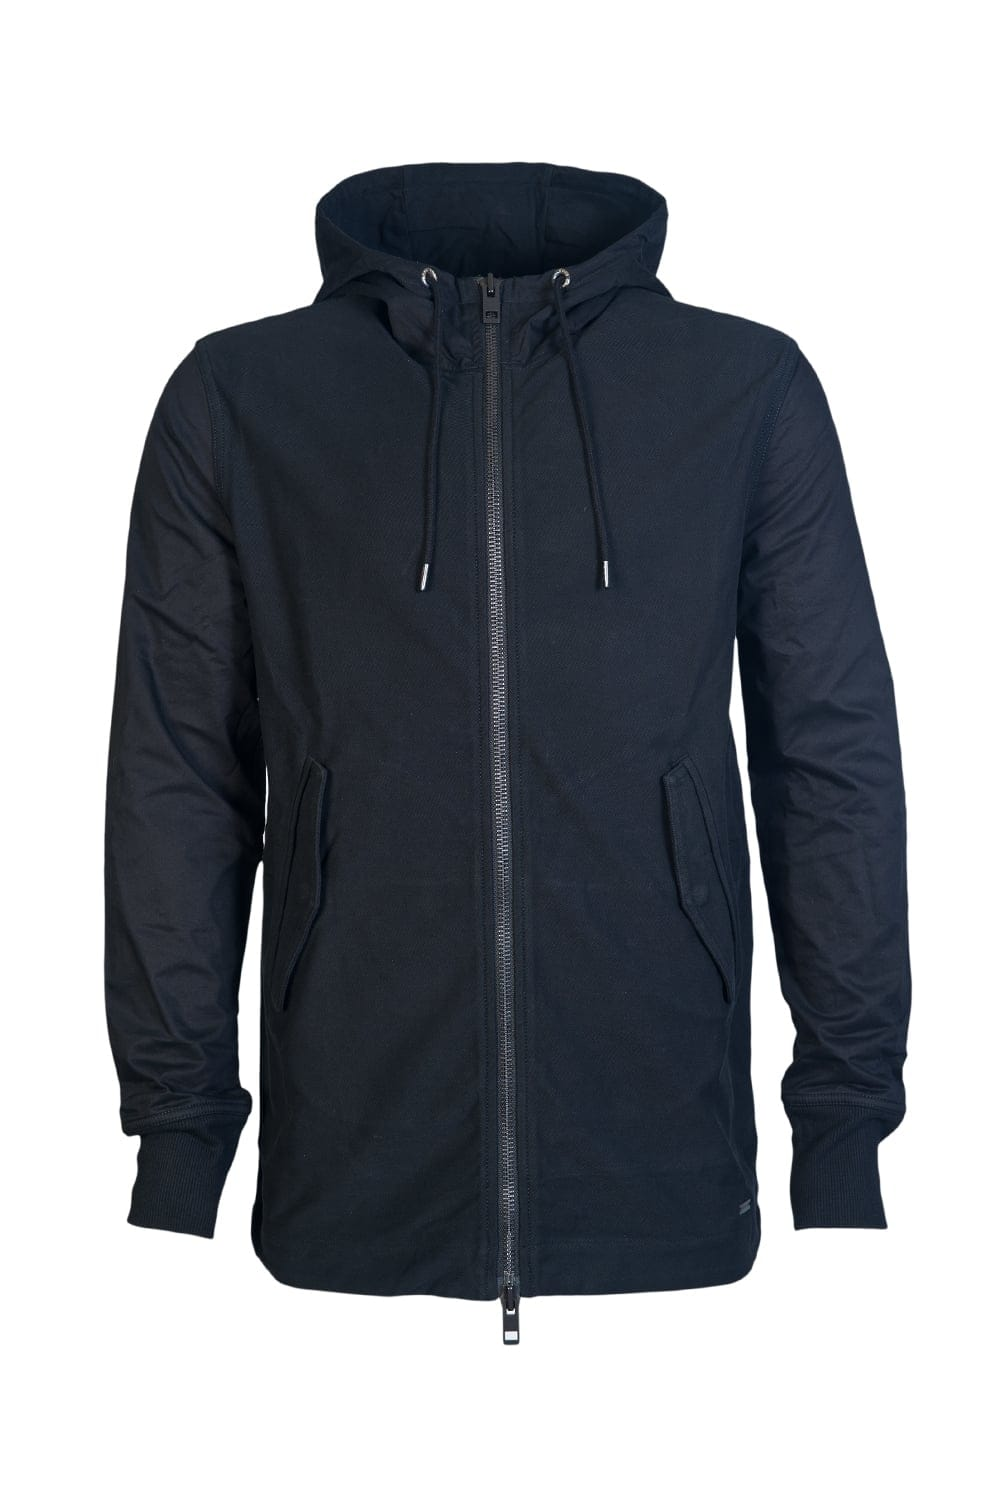 hugo boss jacket hooded zoot 50315483 clothing from sage. Black Bedroom Furniture Sets. Home Design Ideas